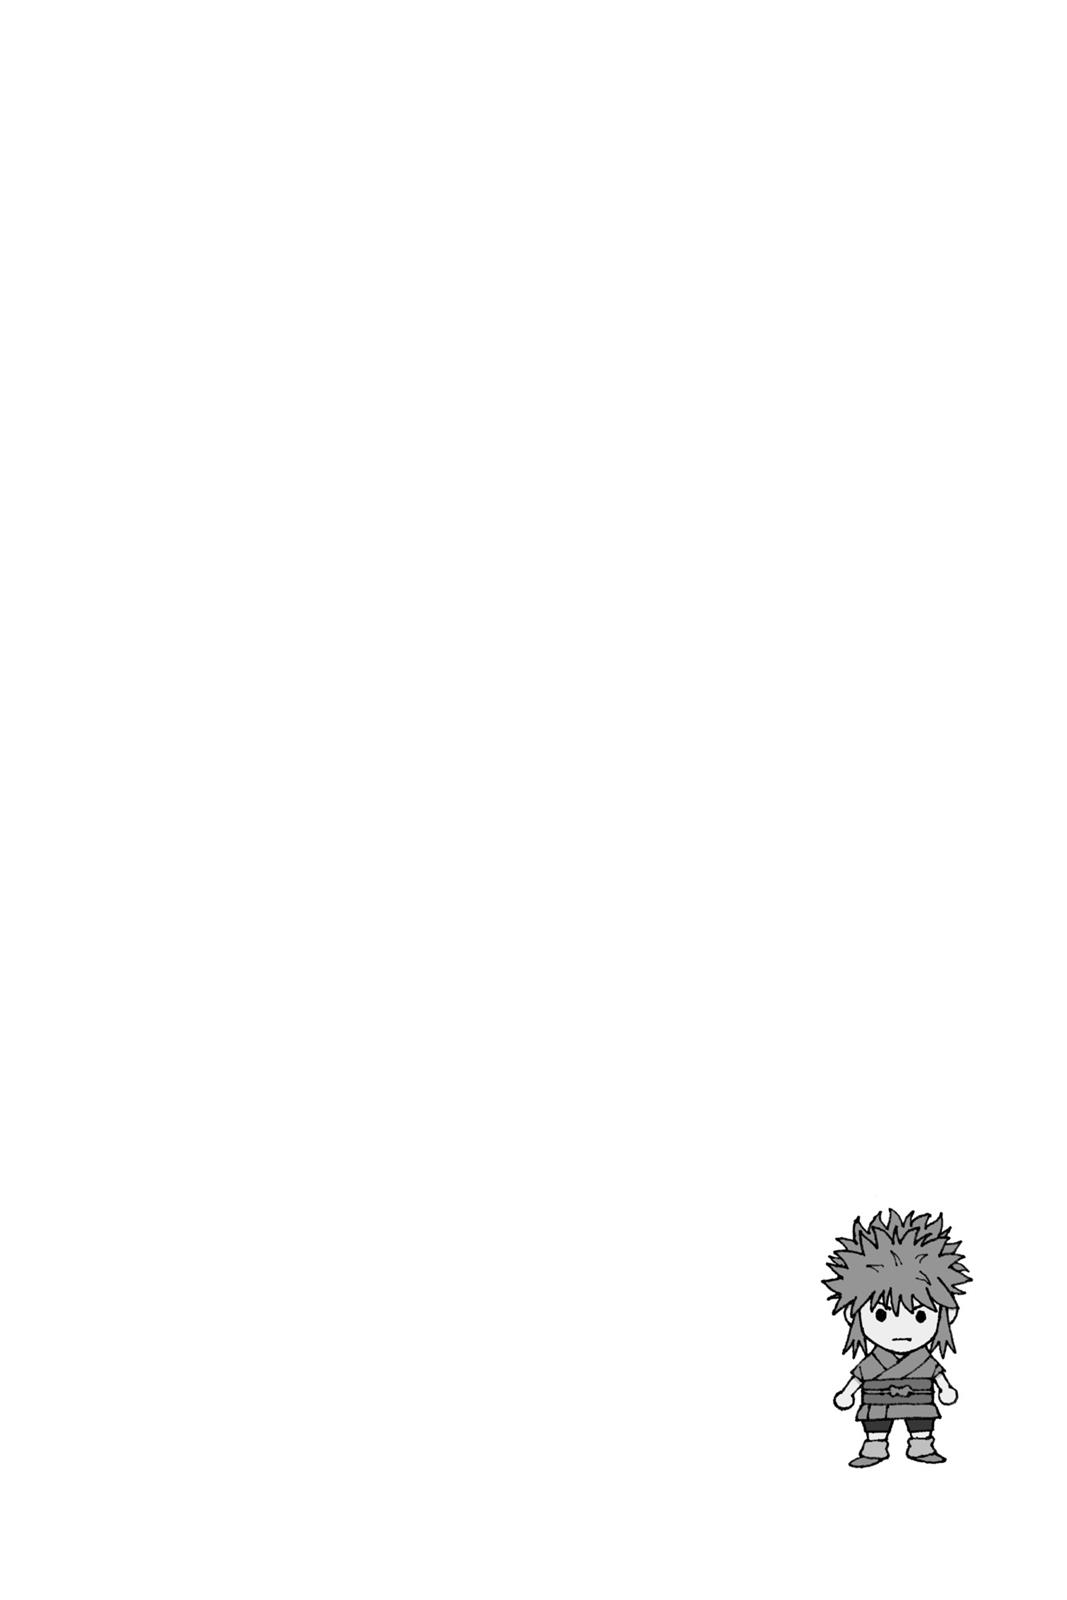 Hunter X Hunter, Chapter 373 image 020